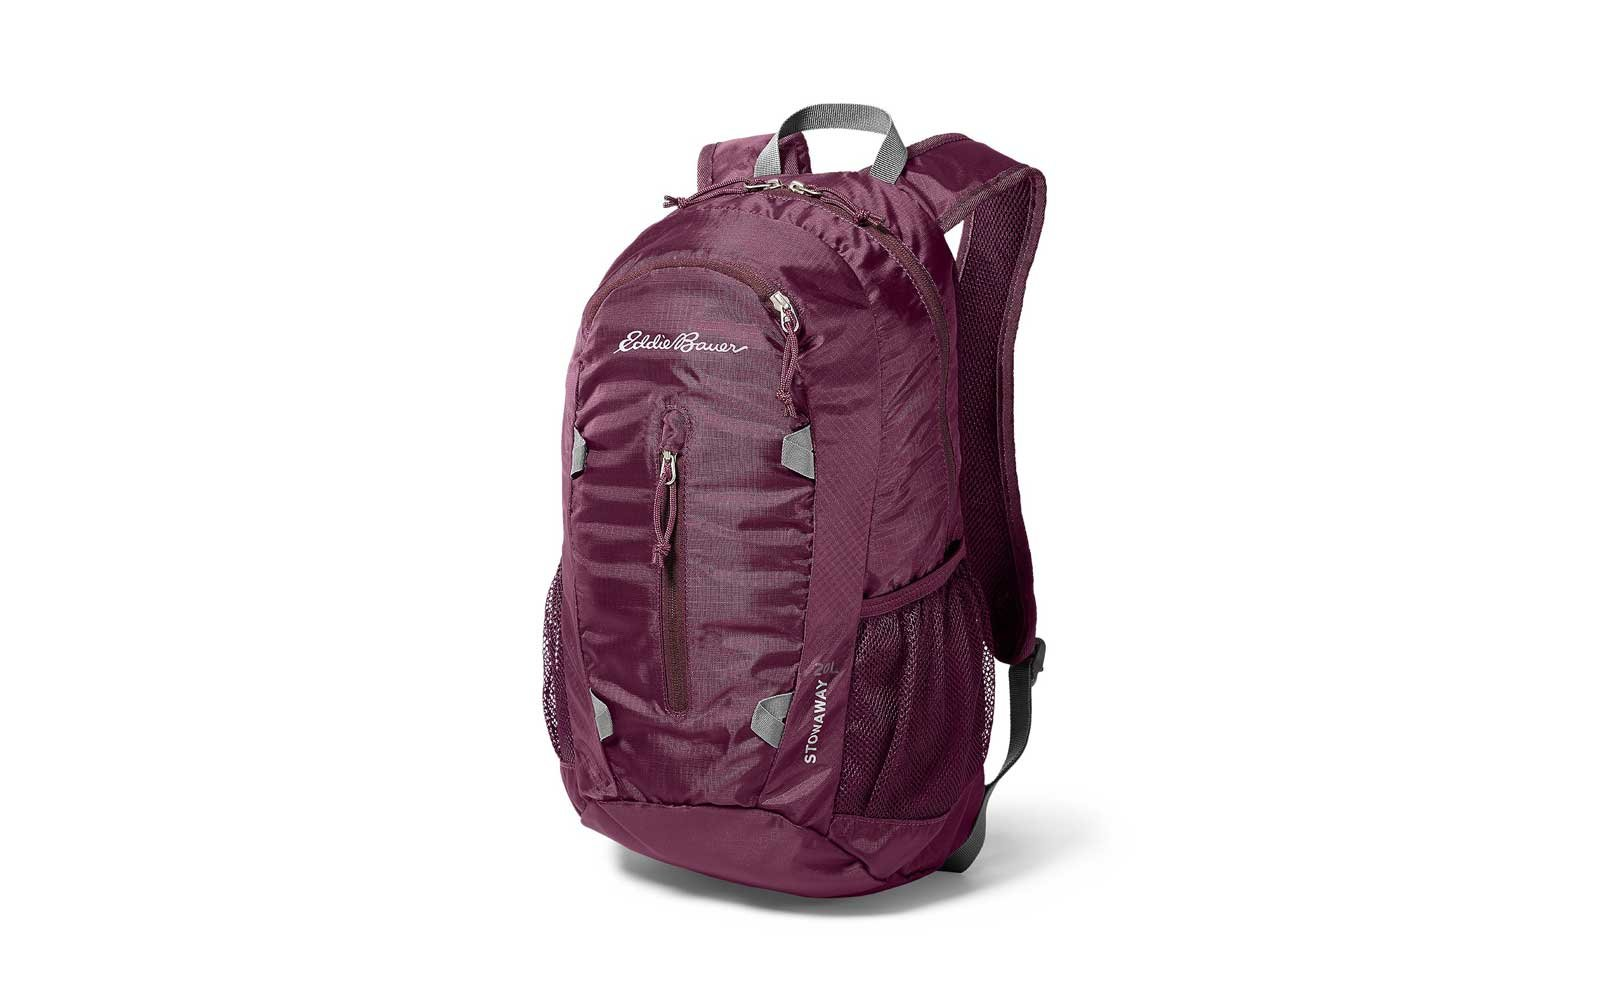 eddie bauer packable backpack